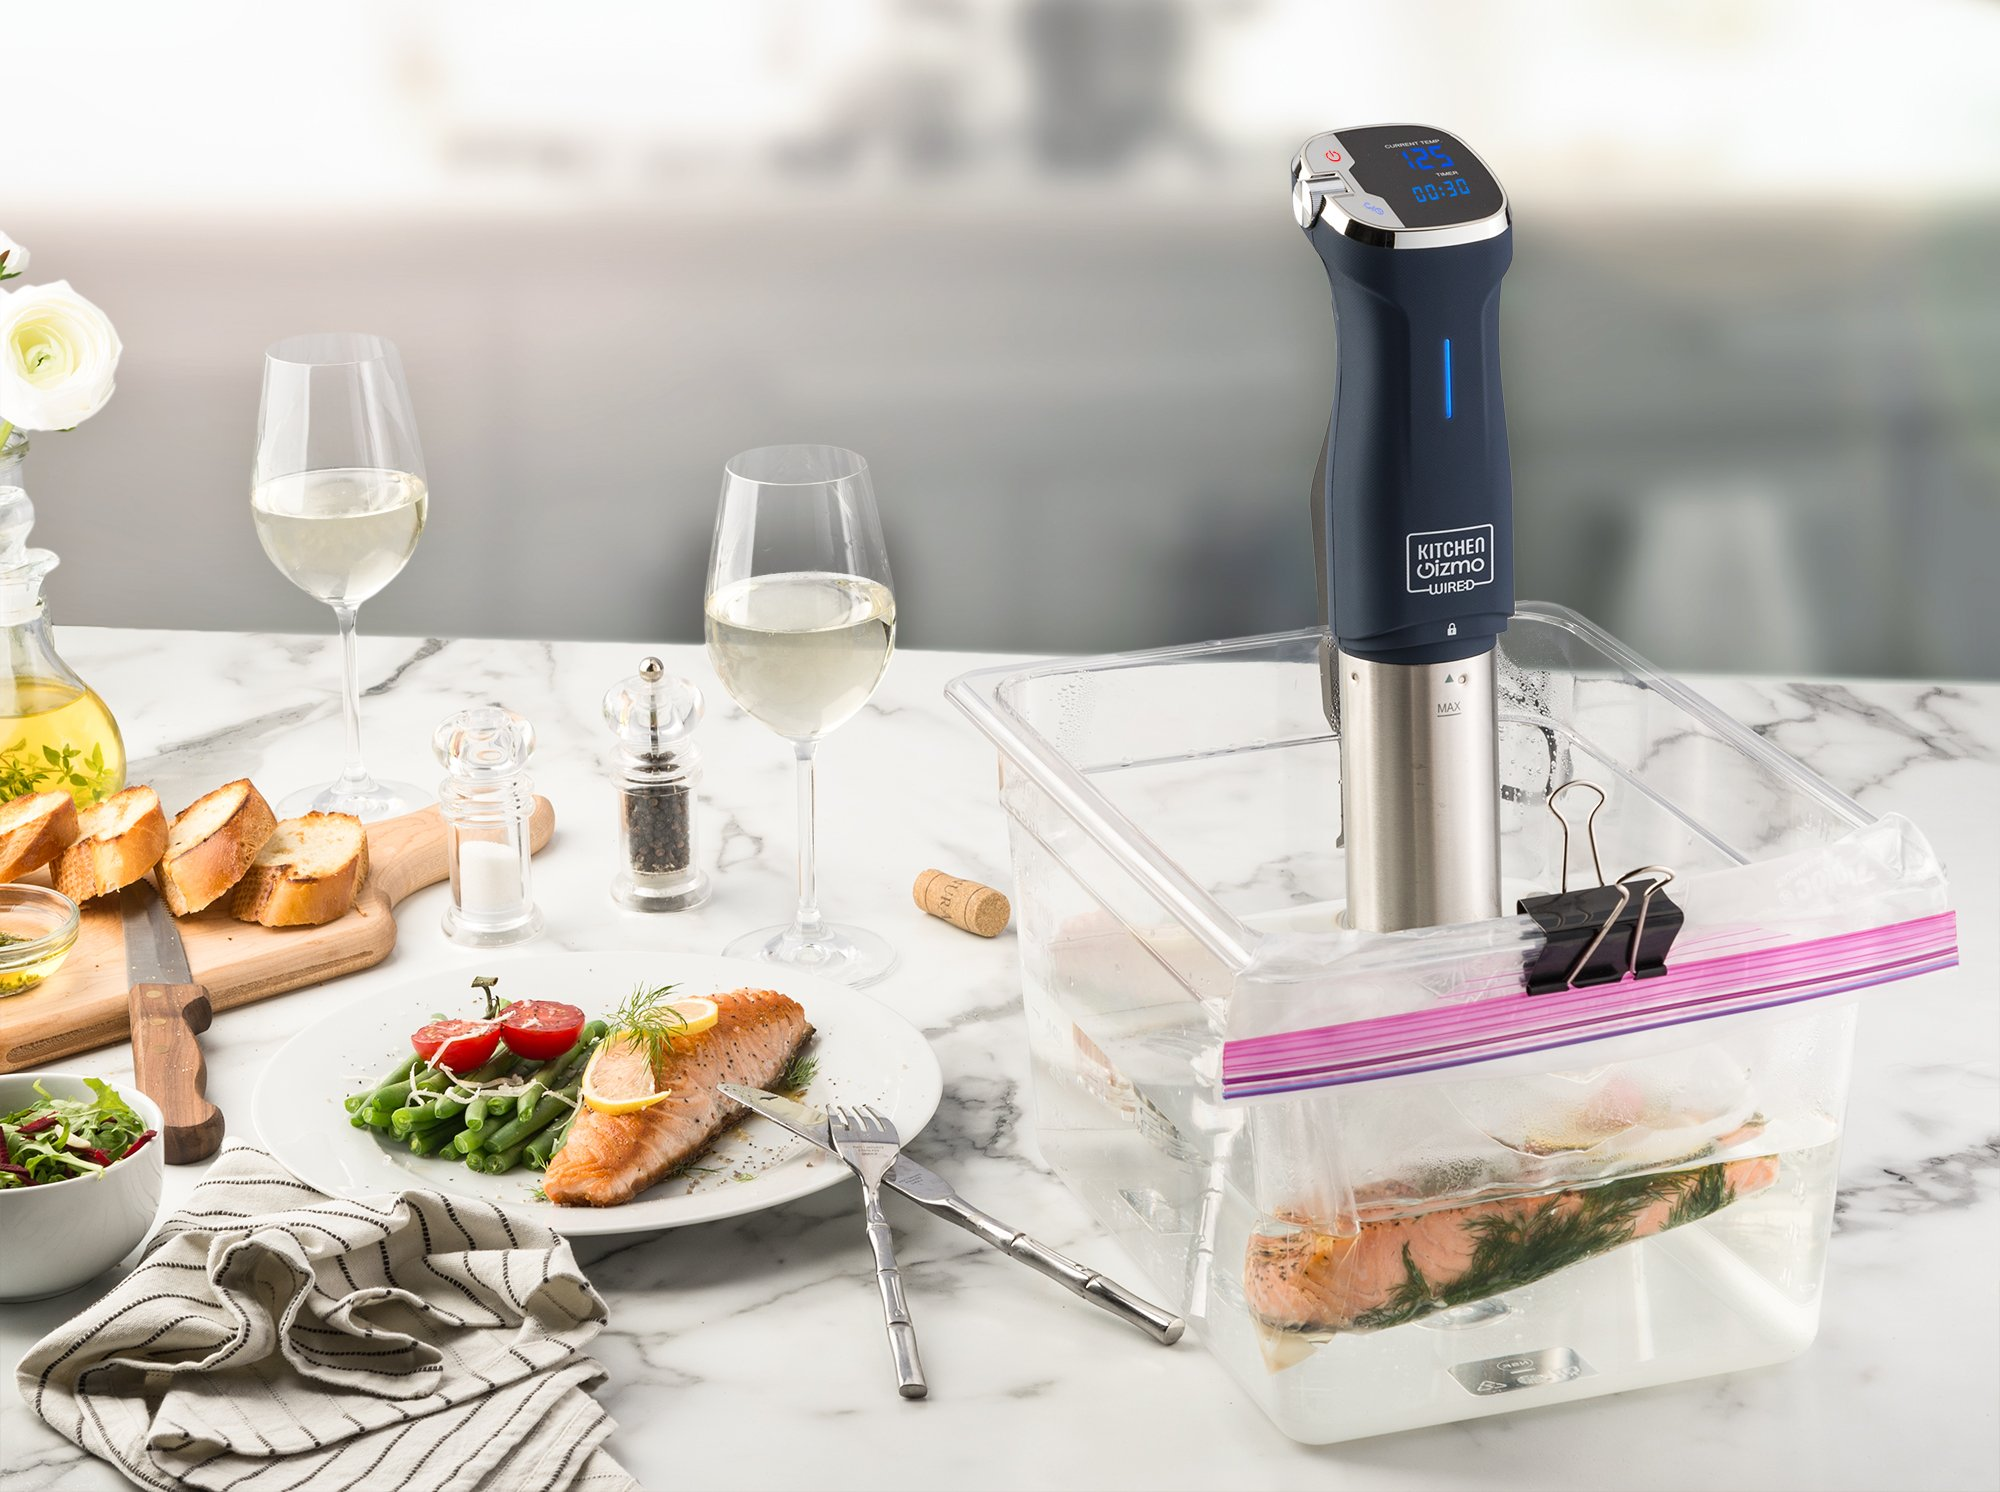 Kitchen Gizmo Sous Vide Immersion Circulator - Cook with Precision, 800 Watt Grey Circulator Stick with Touchscreen Control Panel and Safety Feature - Bonus Recipe Book Included by Kitchen Gizmo (Image #4)